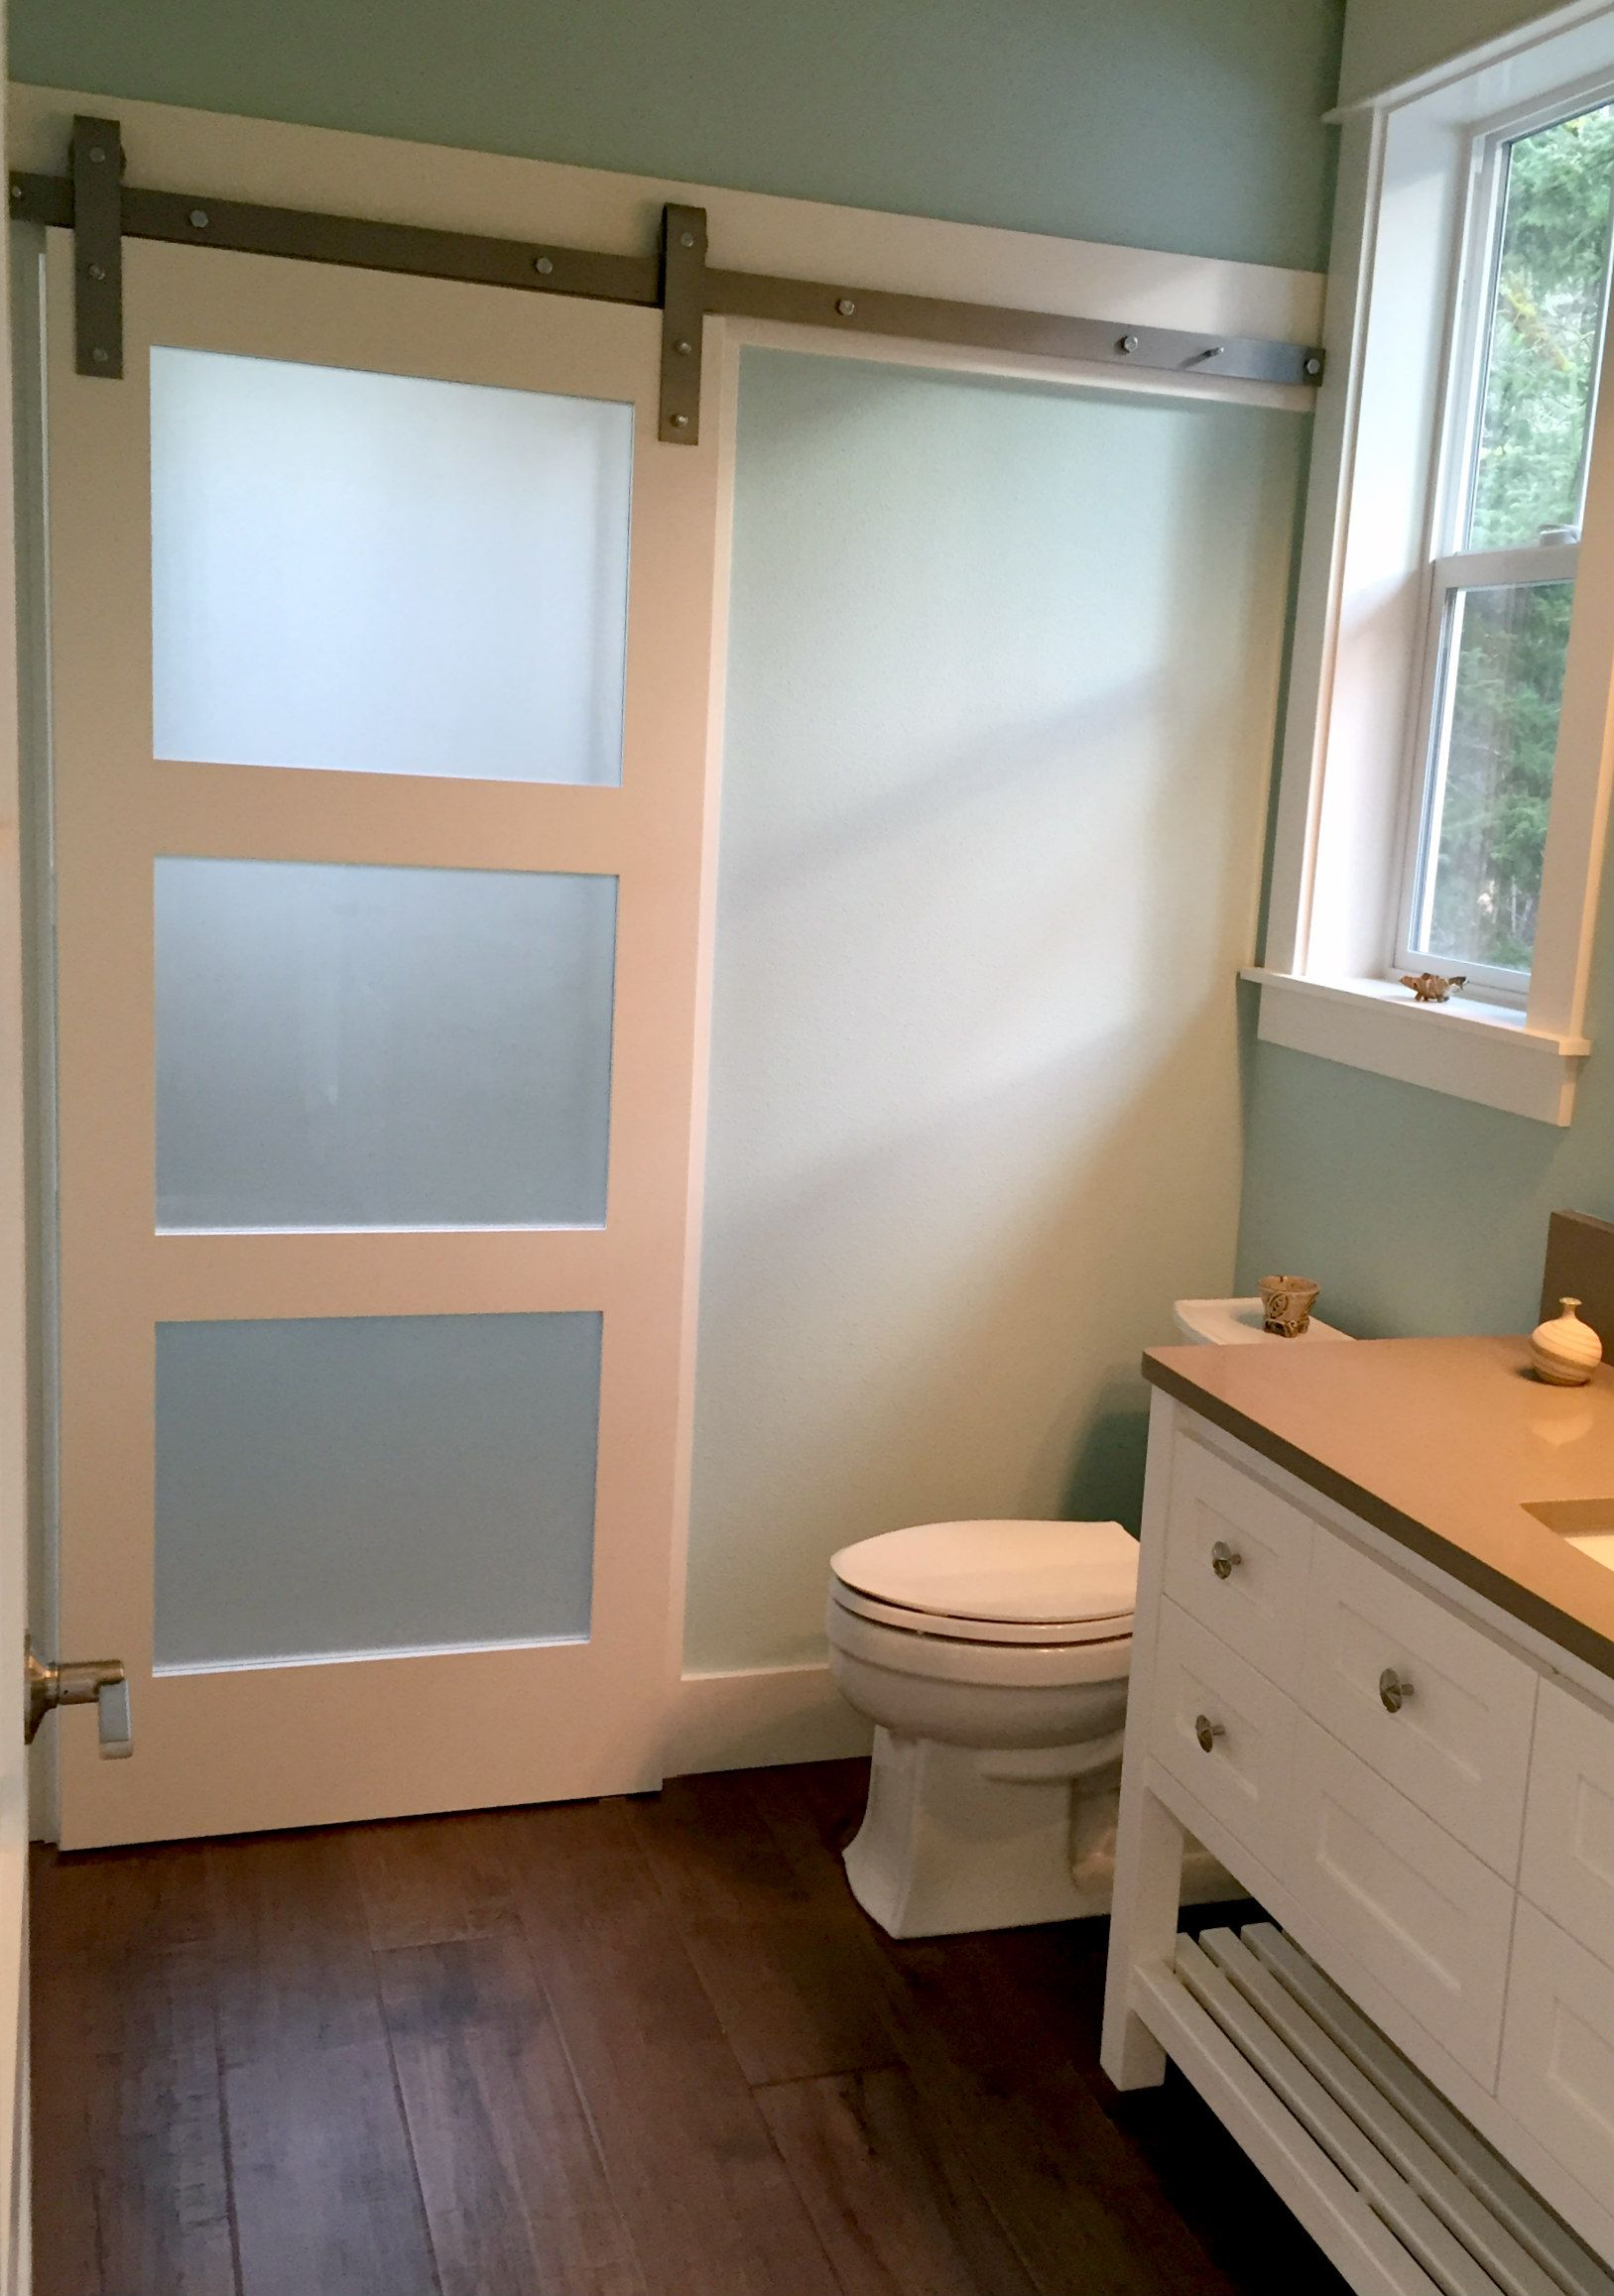 Interior glass door bathroom - Frosted Glass Barn Door Adds Privacy To Shower Room On Other Side In Evenings When